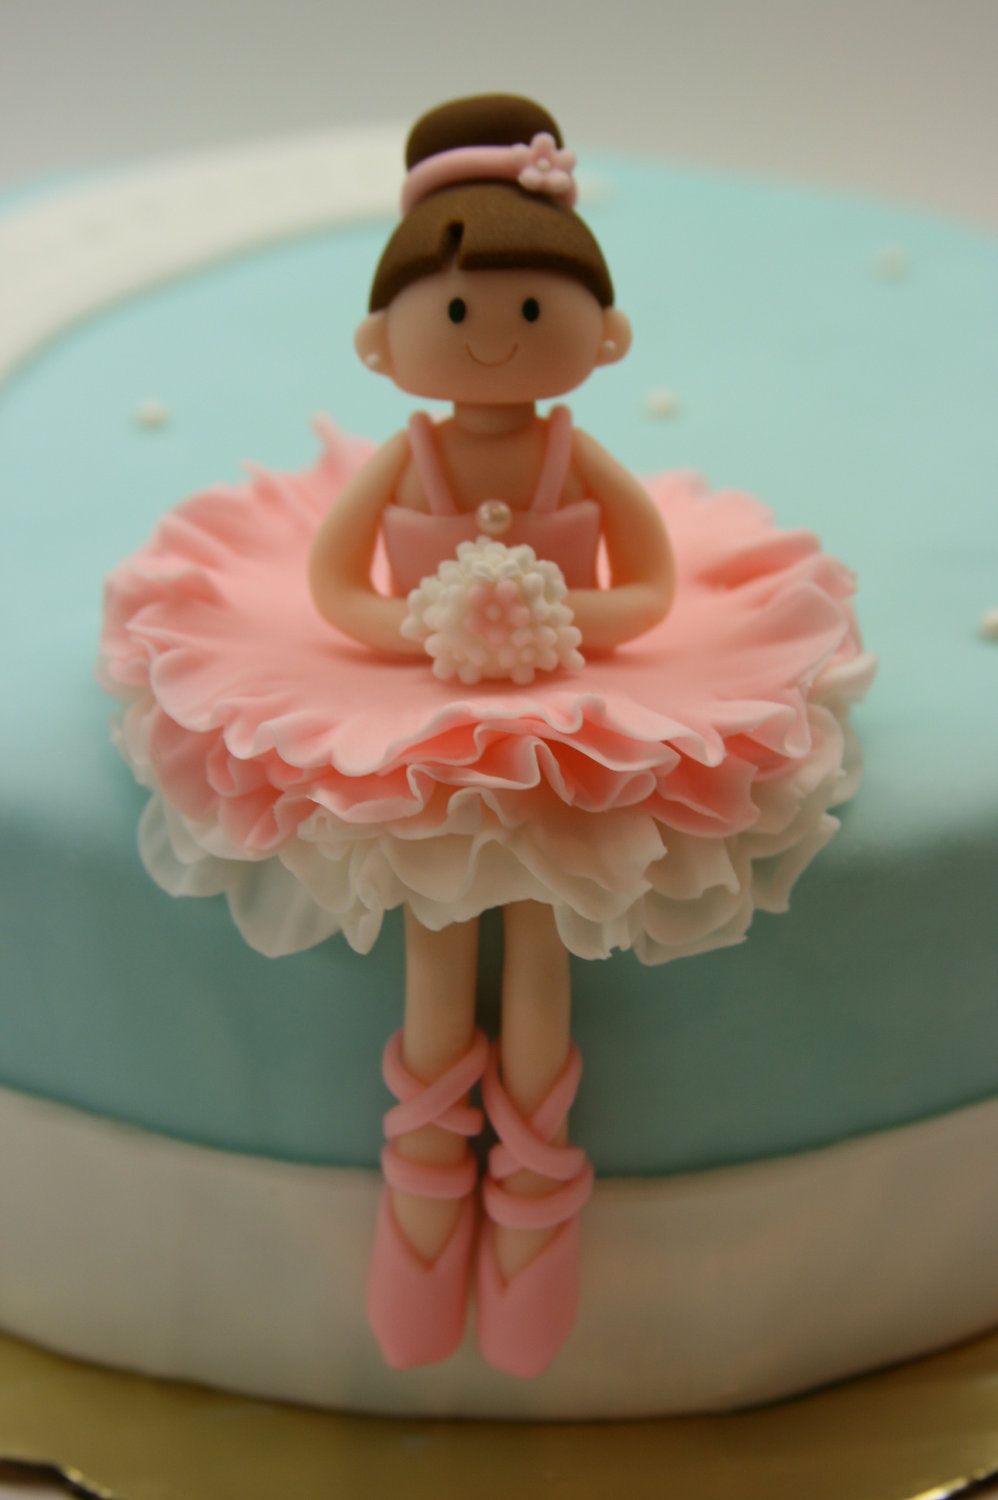 Fondant Cake Decorations Australia